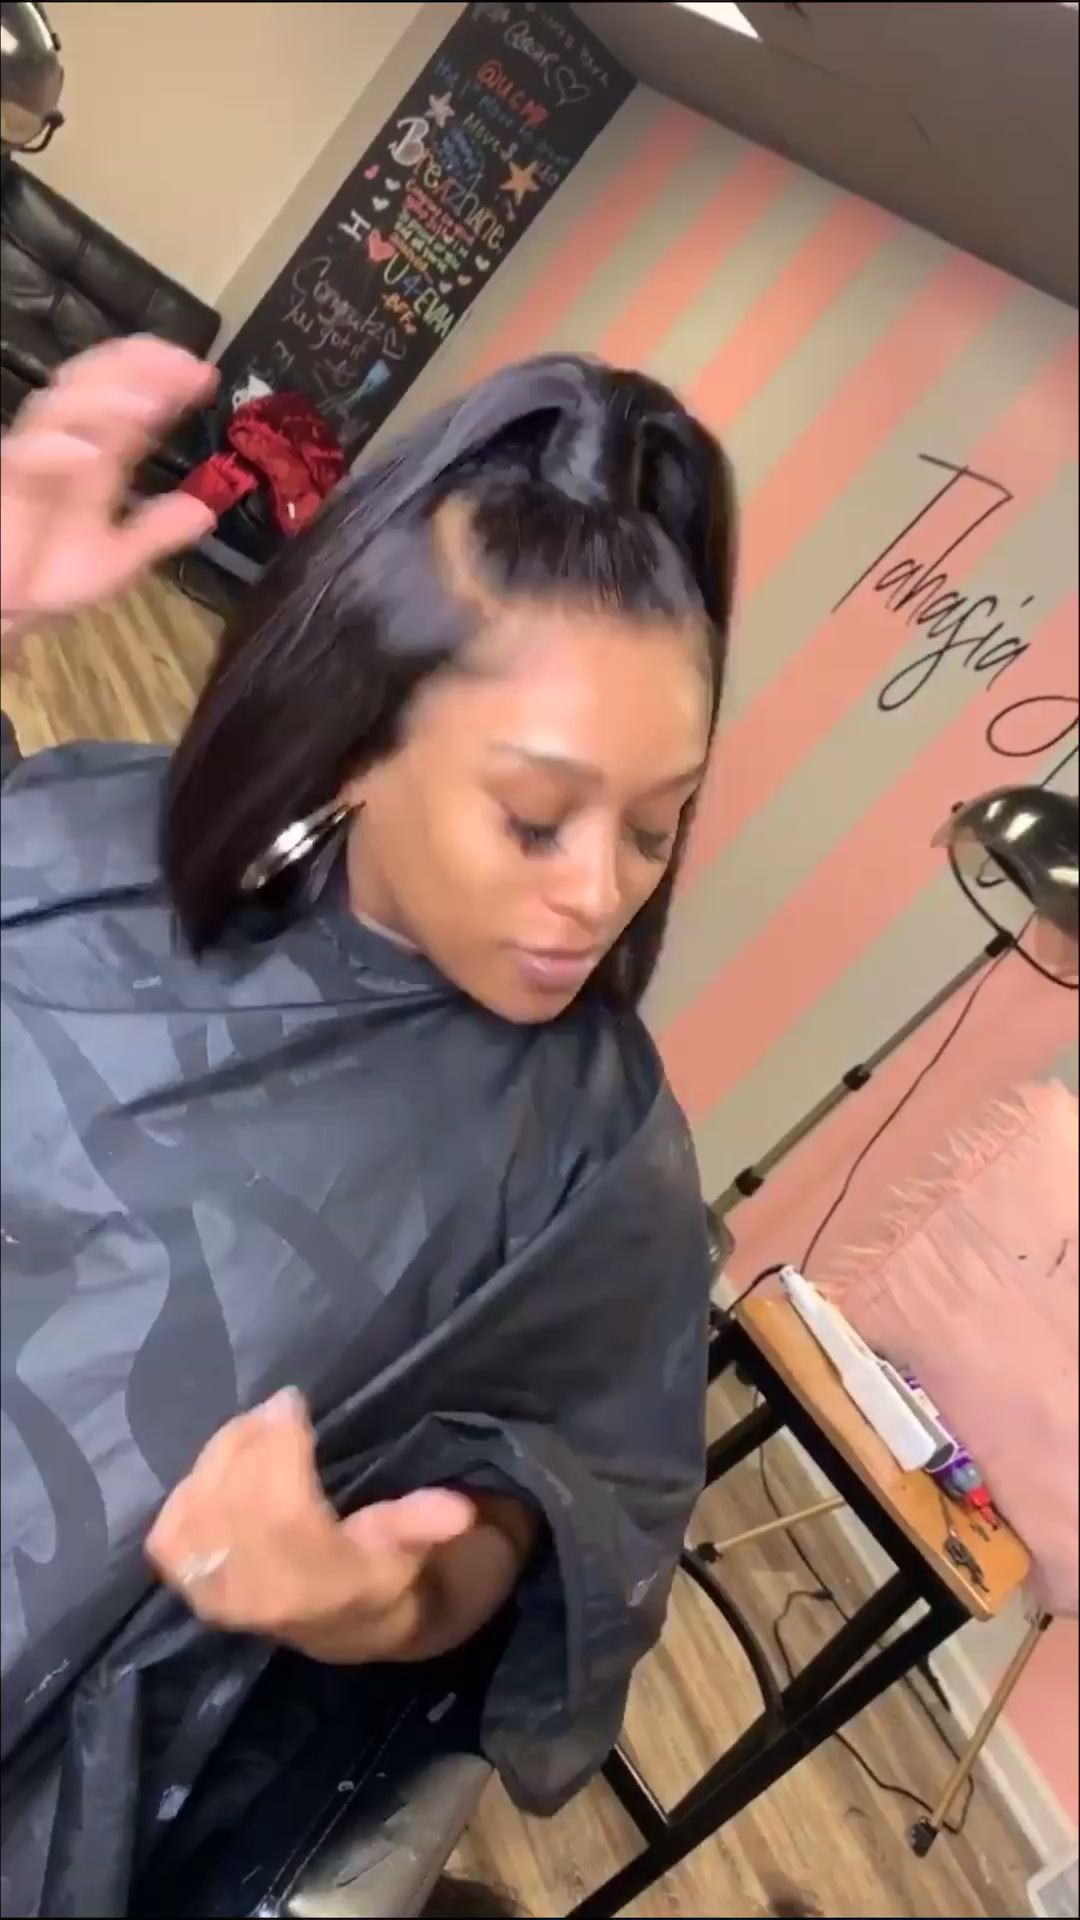 Pin By Dabratt On Slayed Hair Video Human Hair Wigs Weave Hairstyles Hair Styles